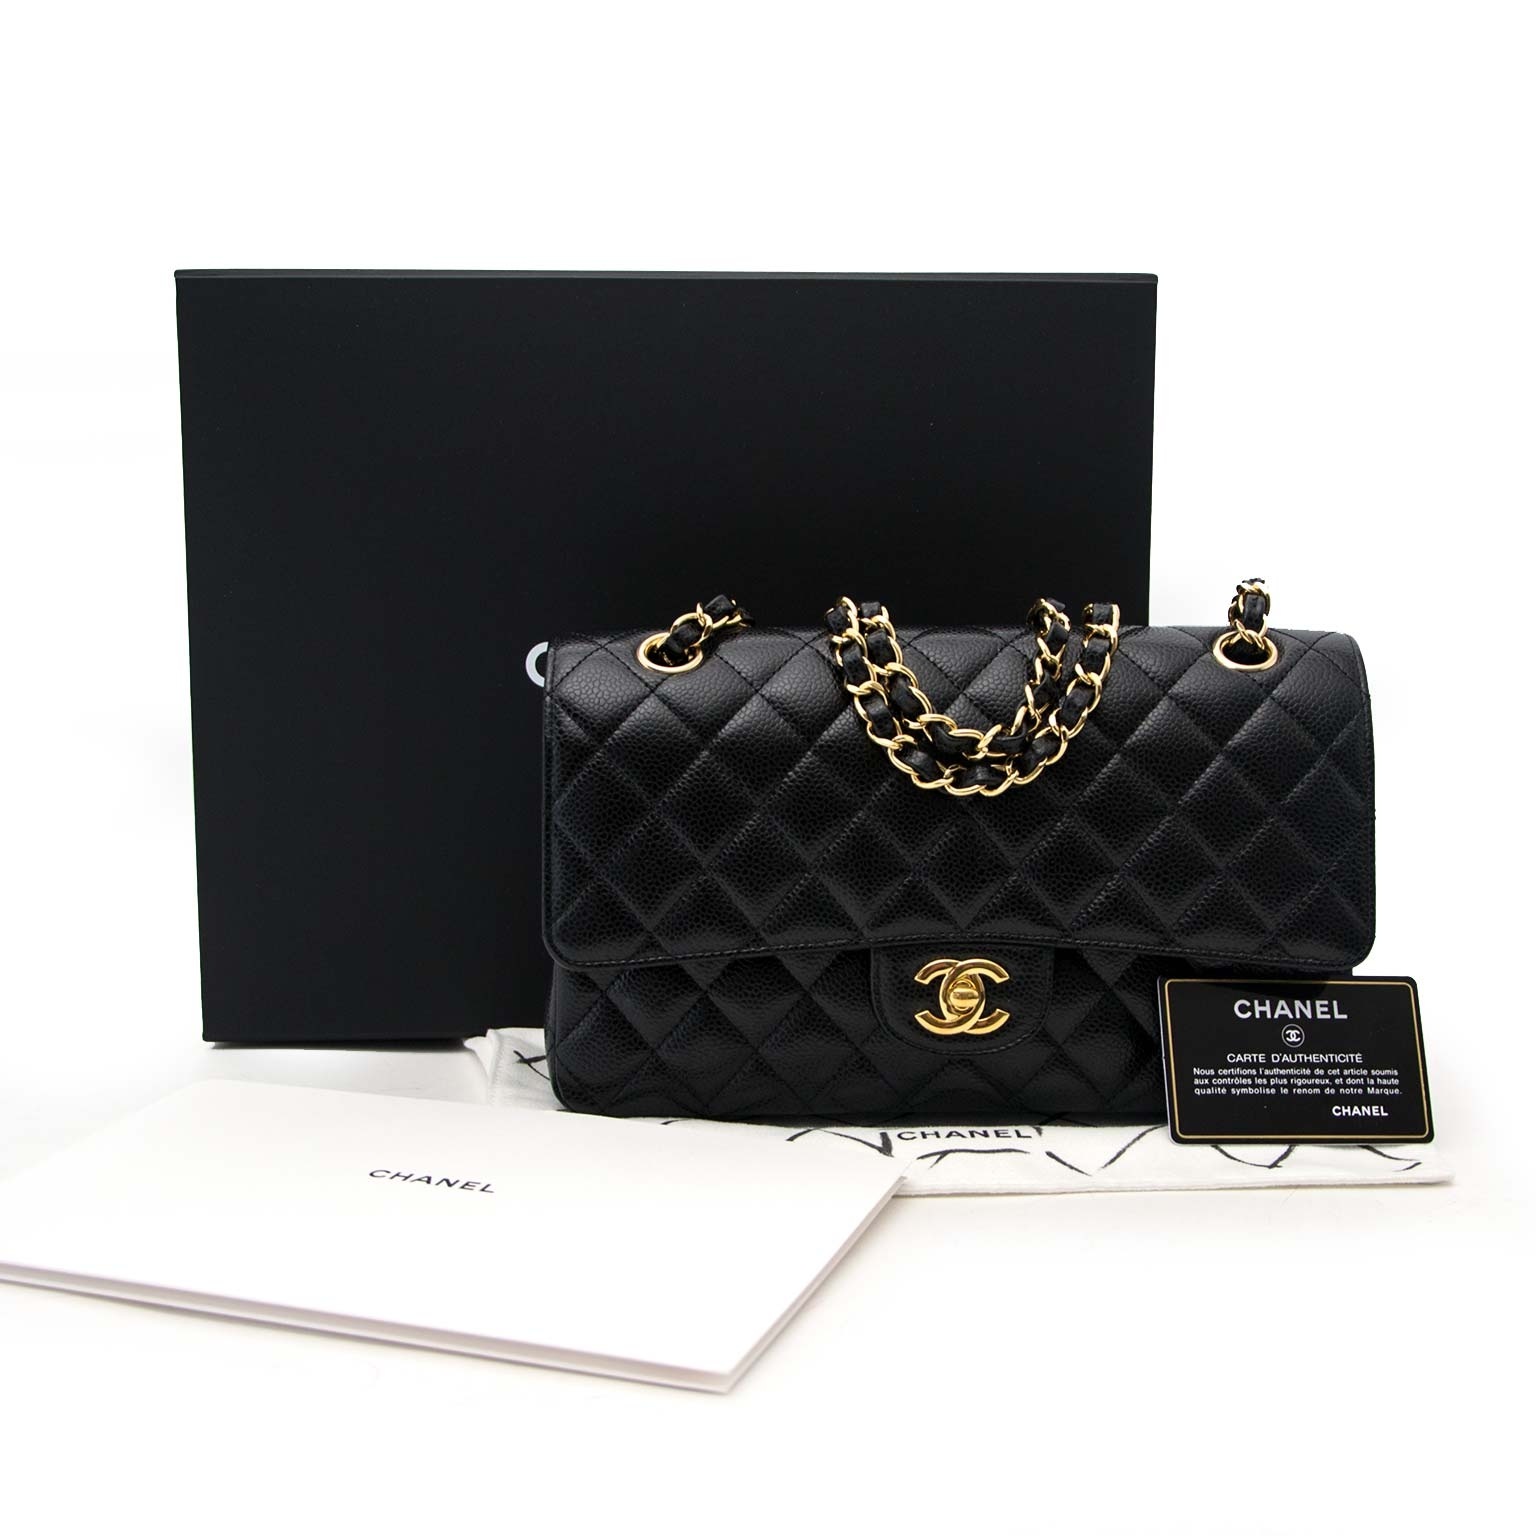 449cf9343fa ... Medium Flap Bag for the best price at Labellov 100% authentic designer  items from brands such as Chanel available online for the best price